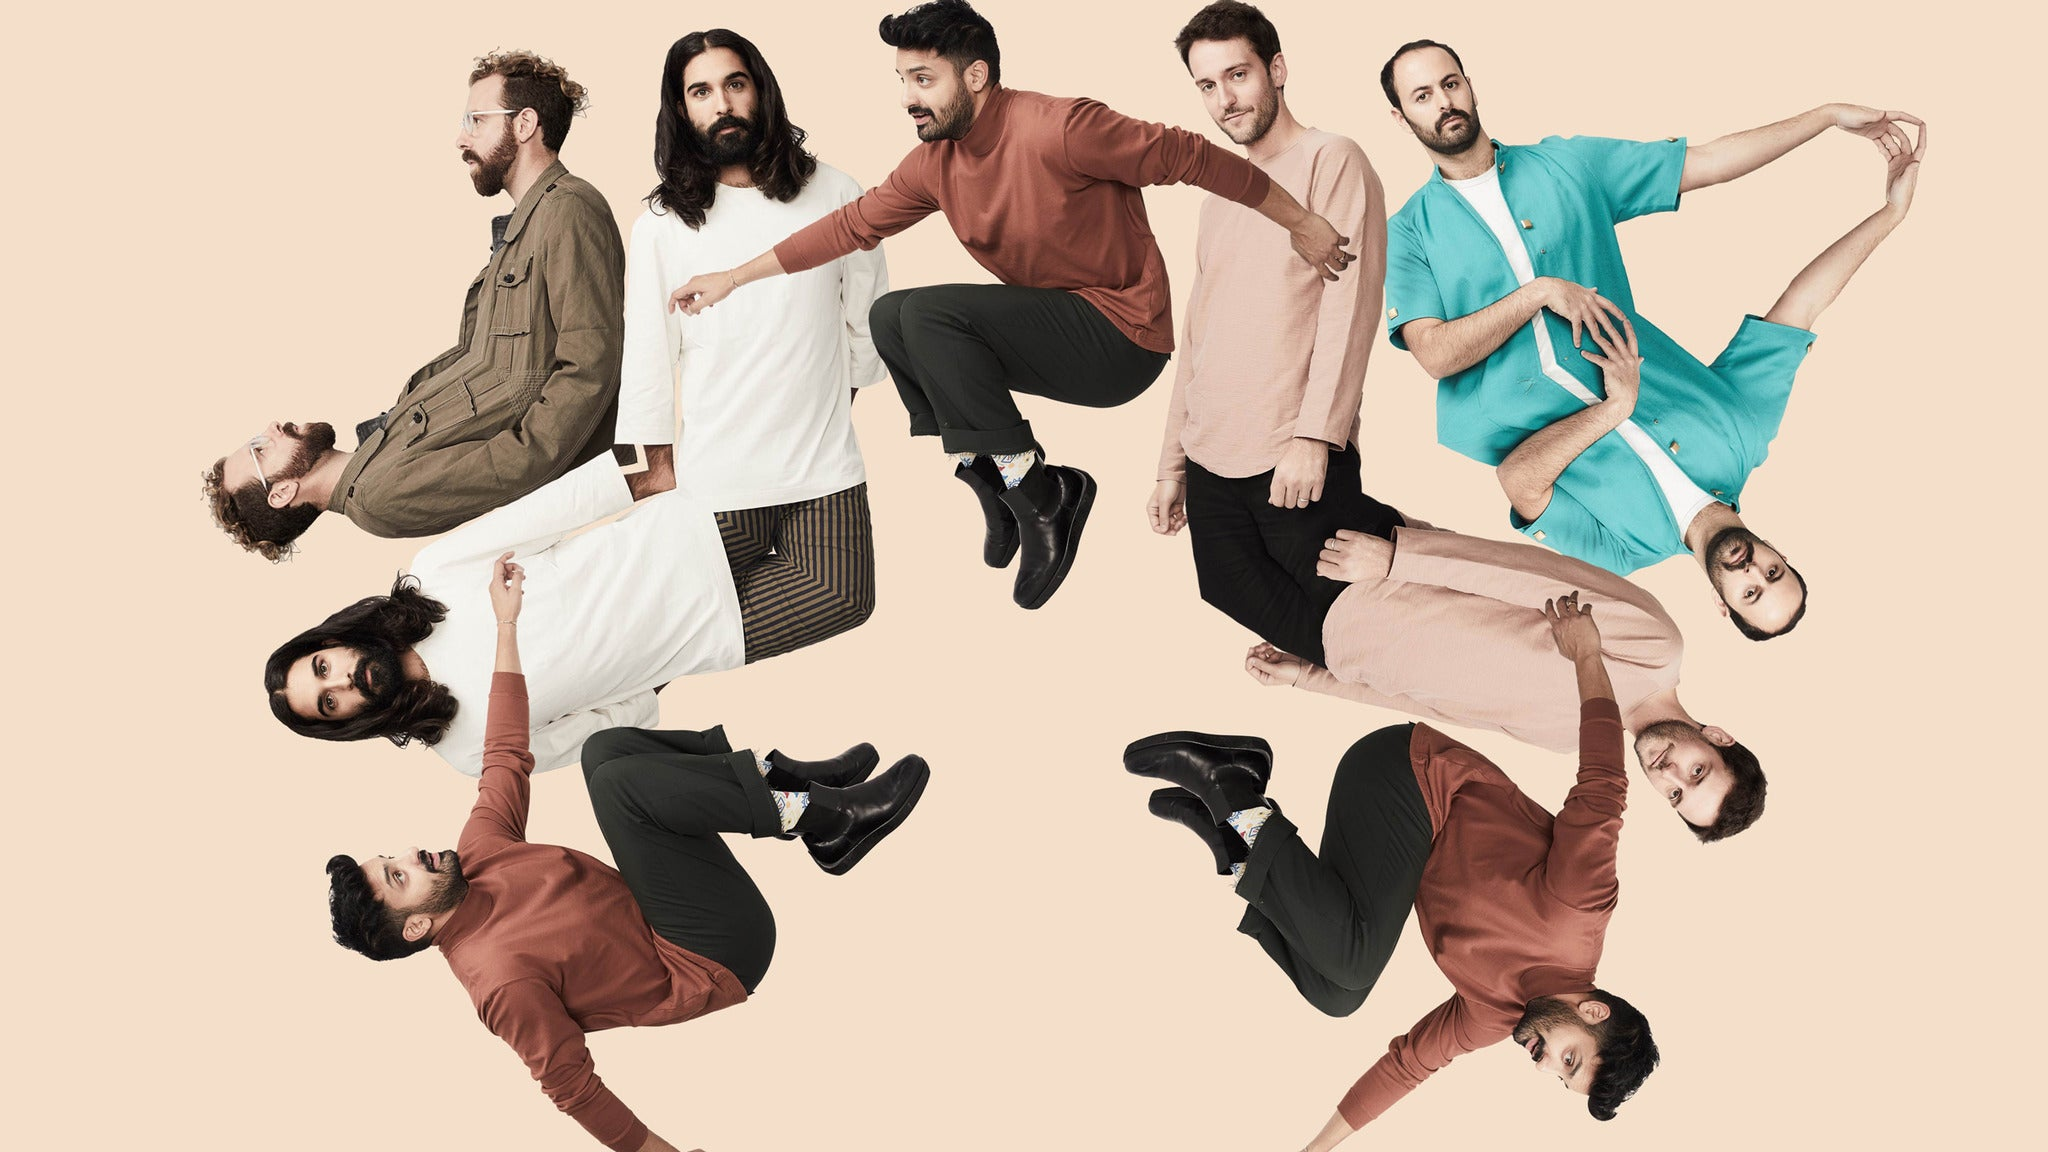 Official Lollapalooza Aftershow featuring Young the Giant pre-sale code for early tickets in Chicago